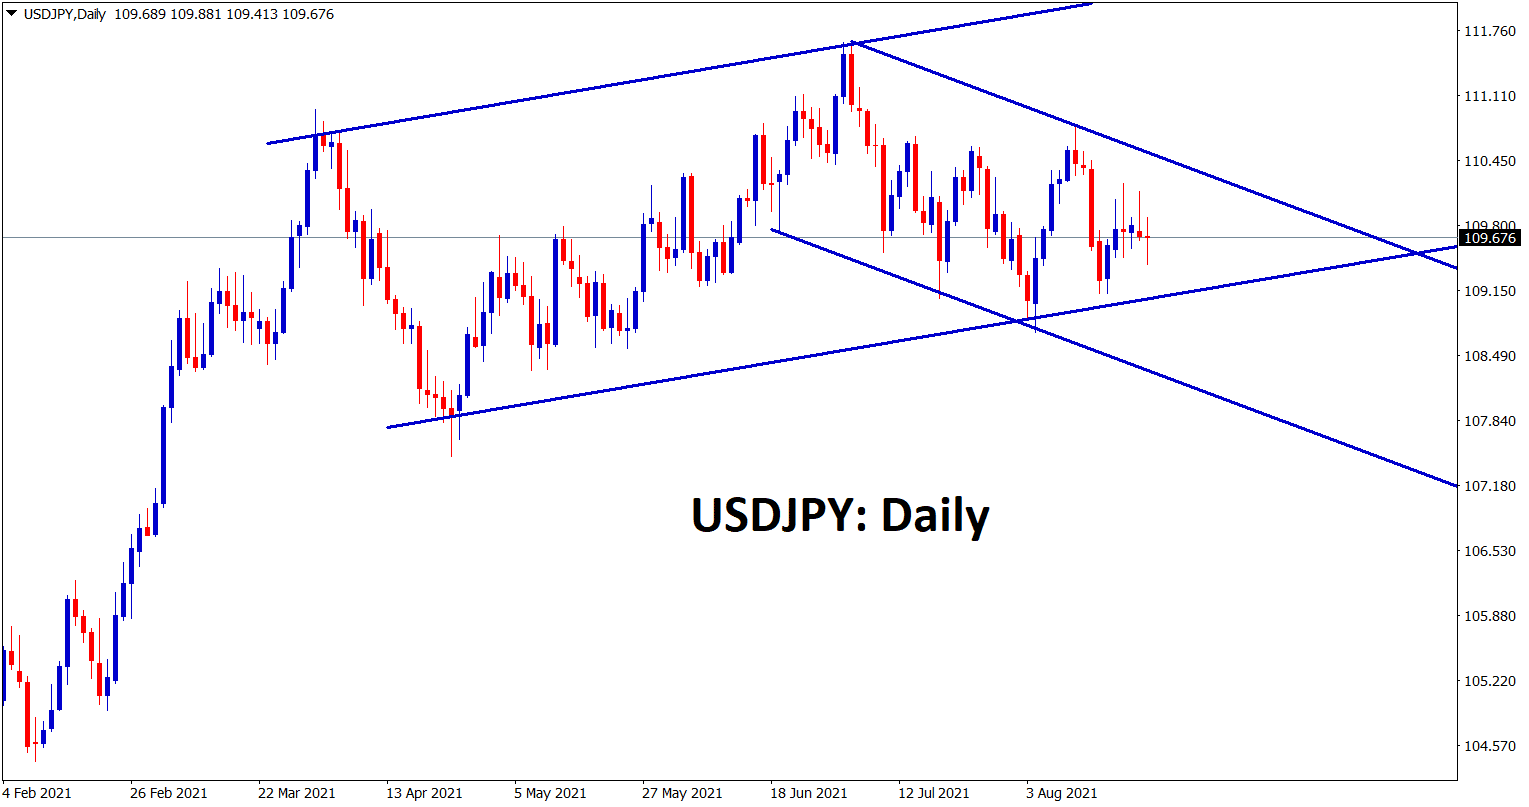 USDJPY is still moving between the channel ranges